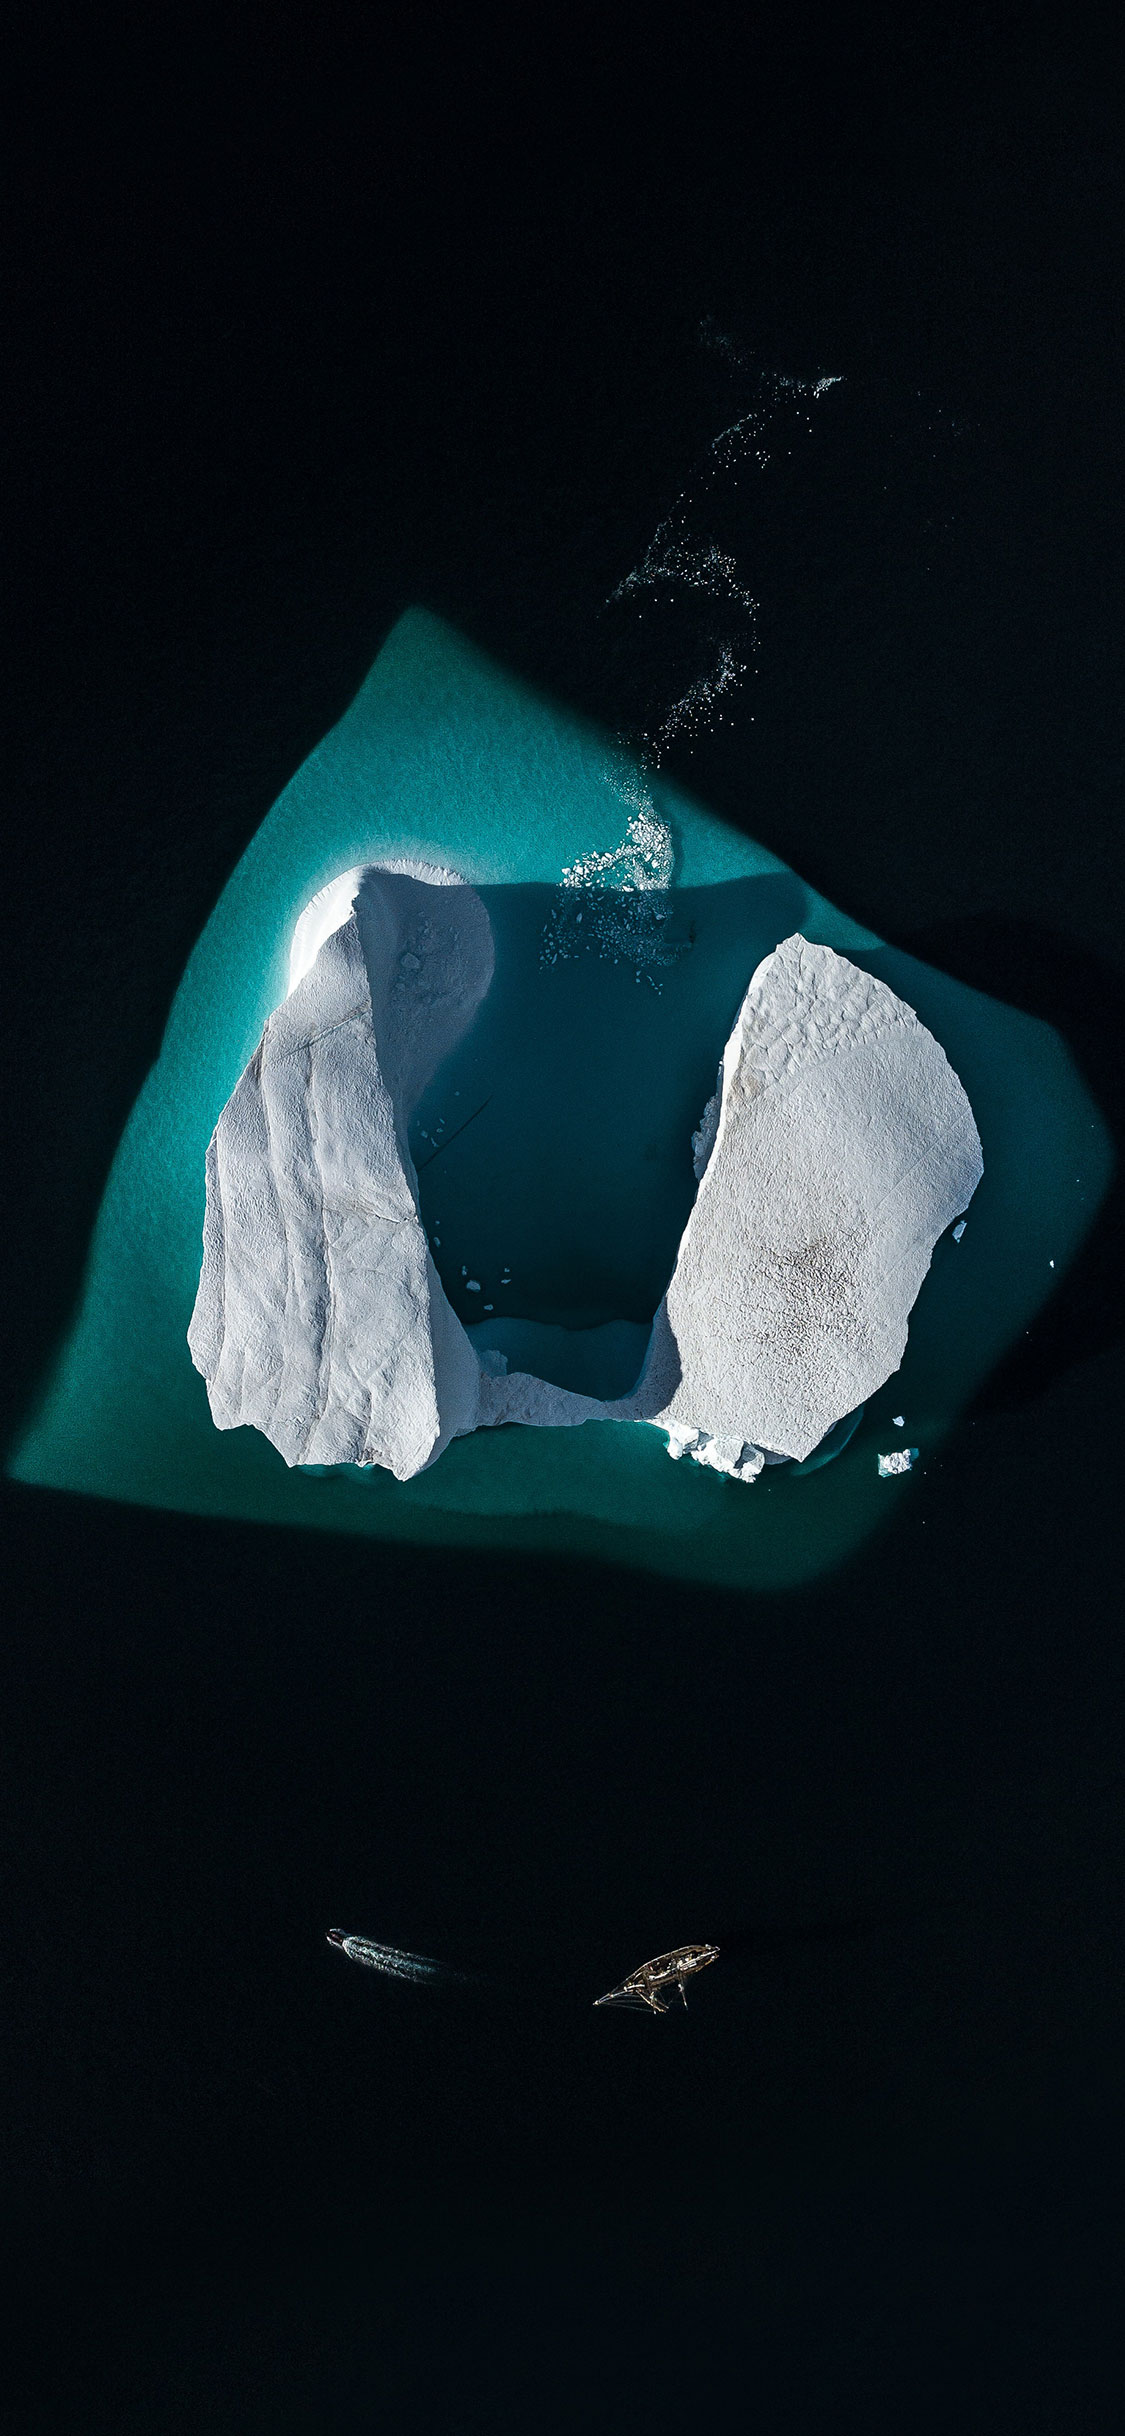 iPhone wallpaper iceberg black Fonds d'écran iPhone du 05/09/2018